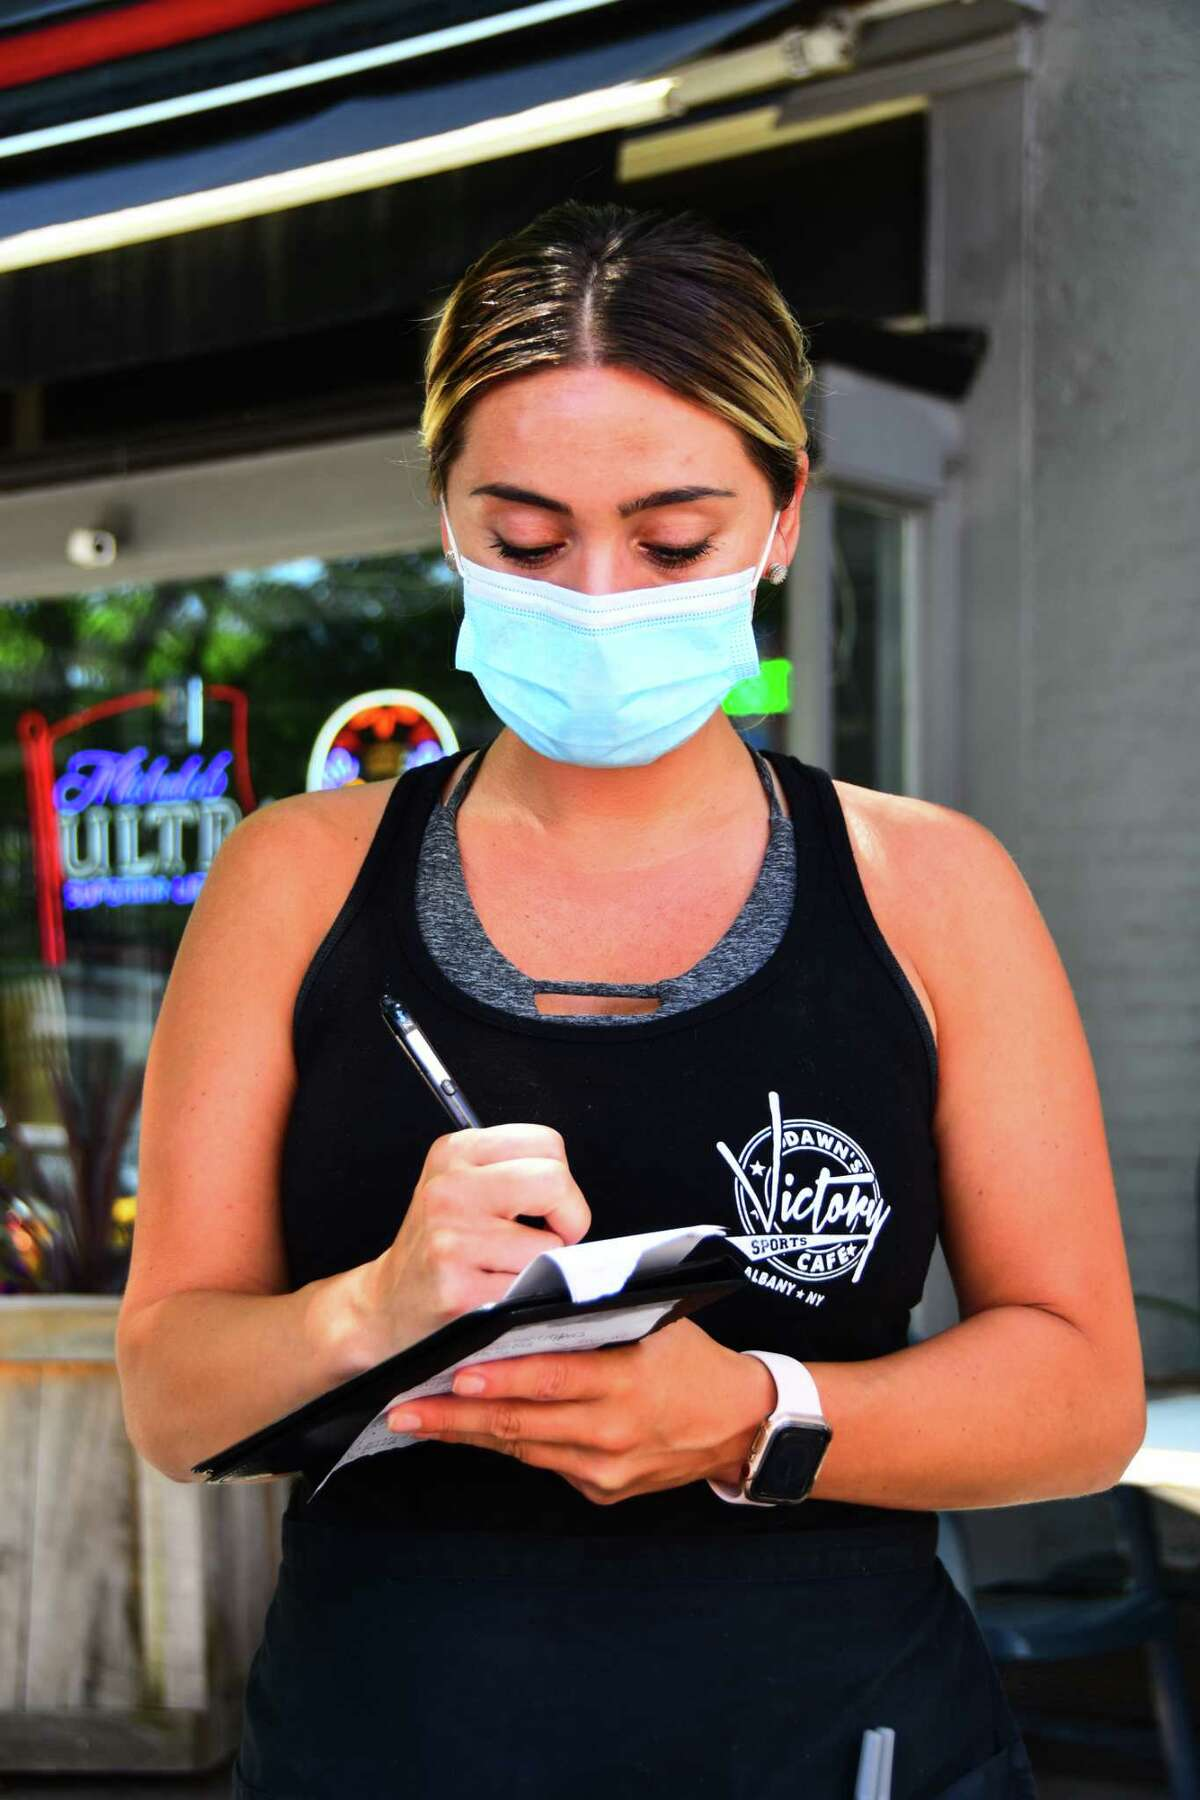 Summer Waterhouse, a server at Dawn's Victory Sports Cafe in Albany, on her first day back at work Thursday after more than 11 weeks of a coronavirus-related furlough.